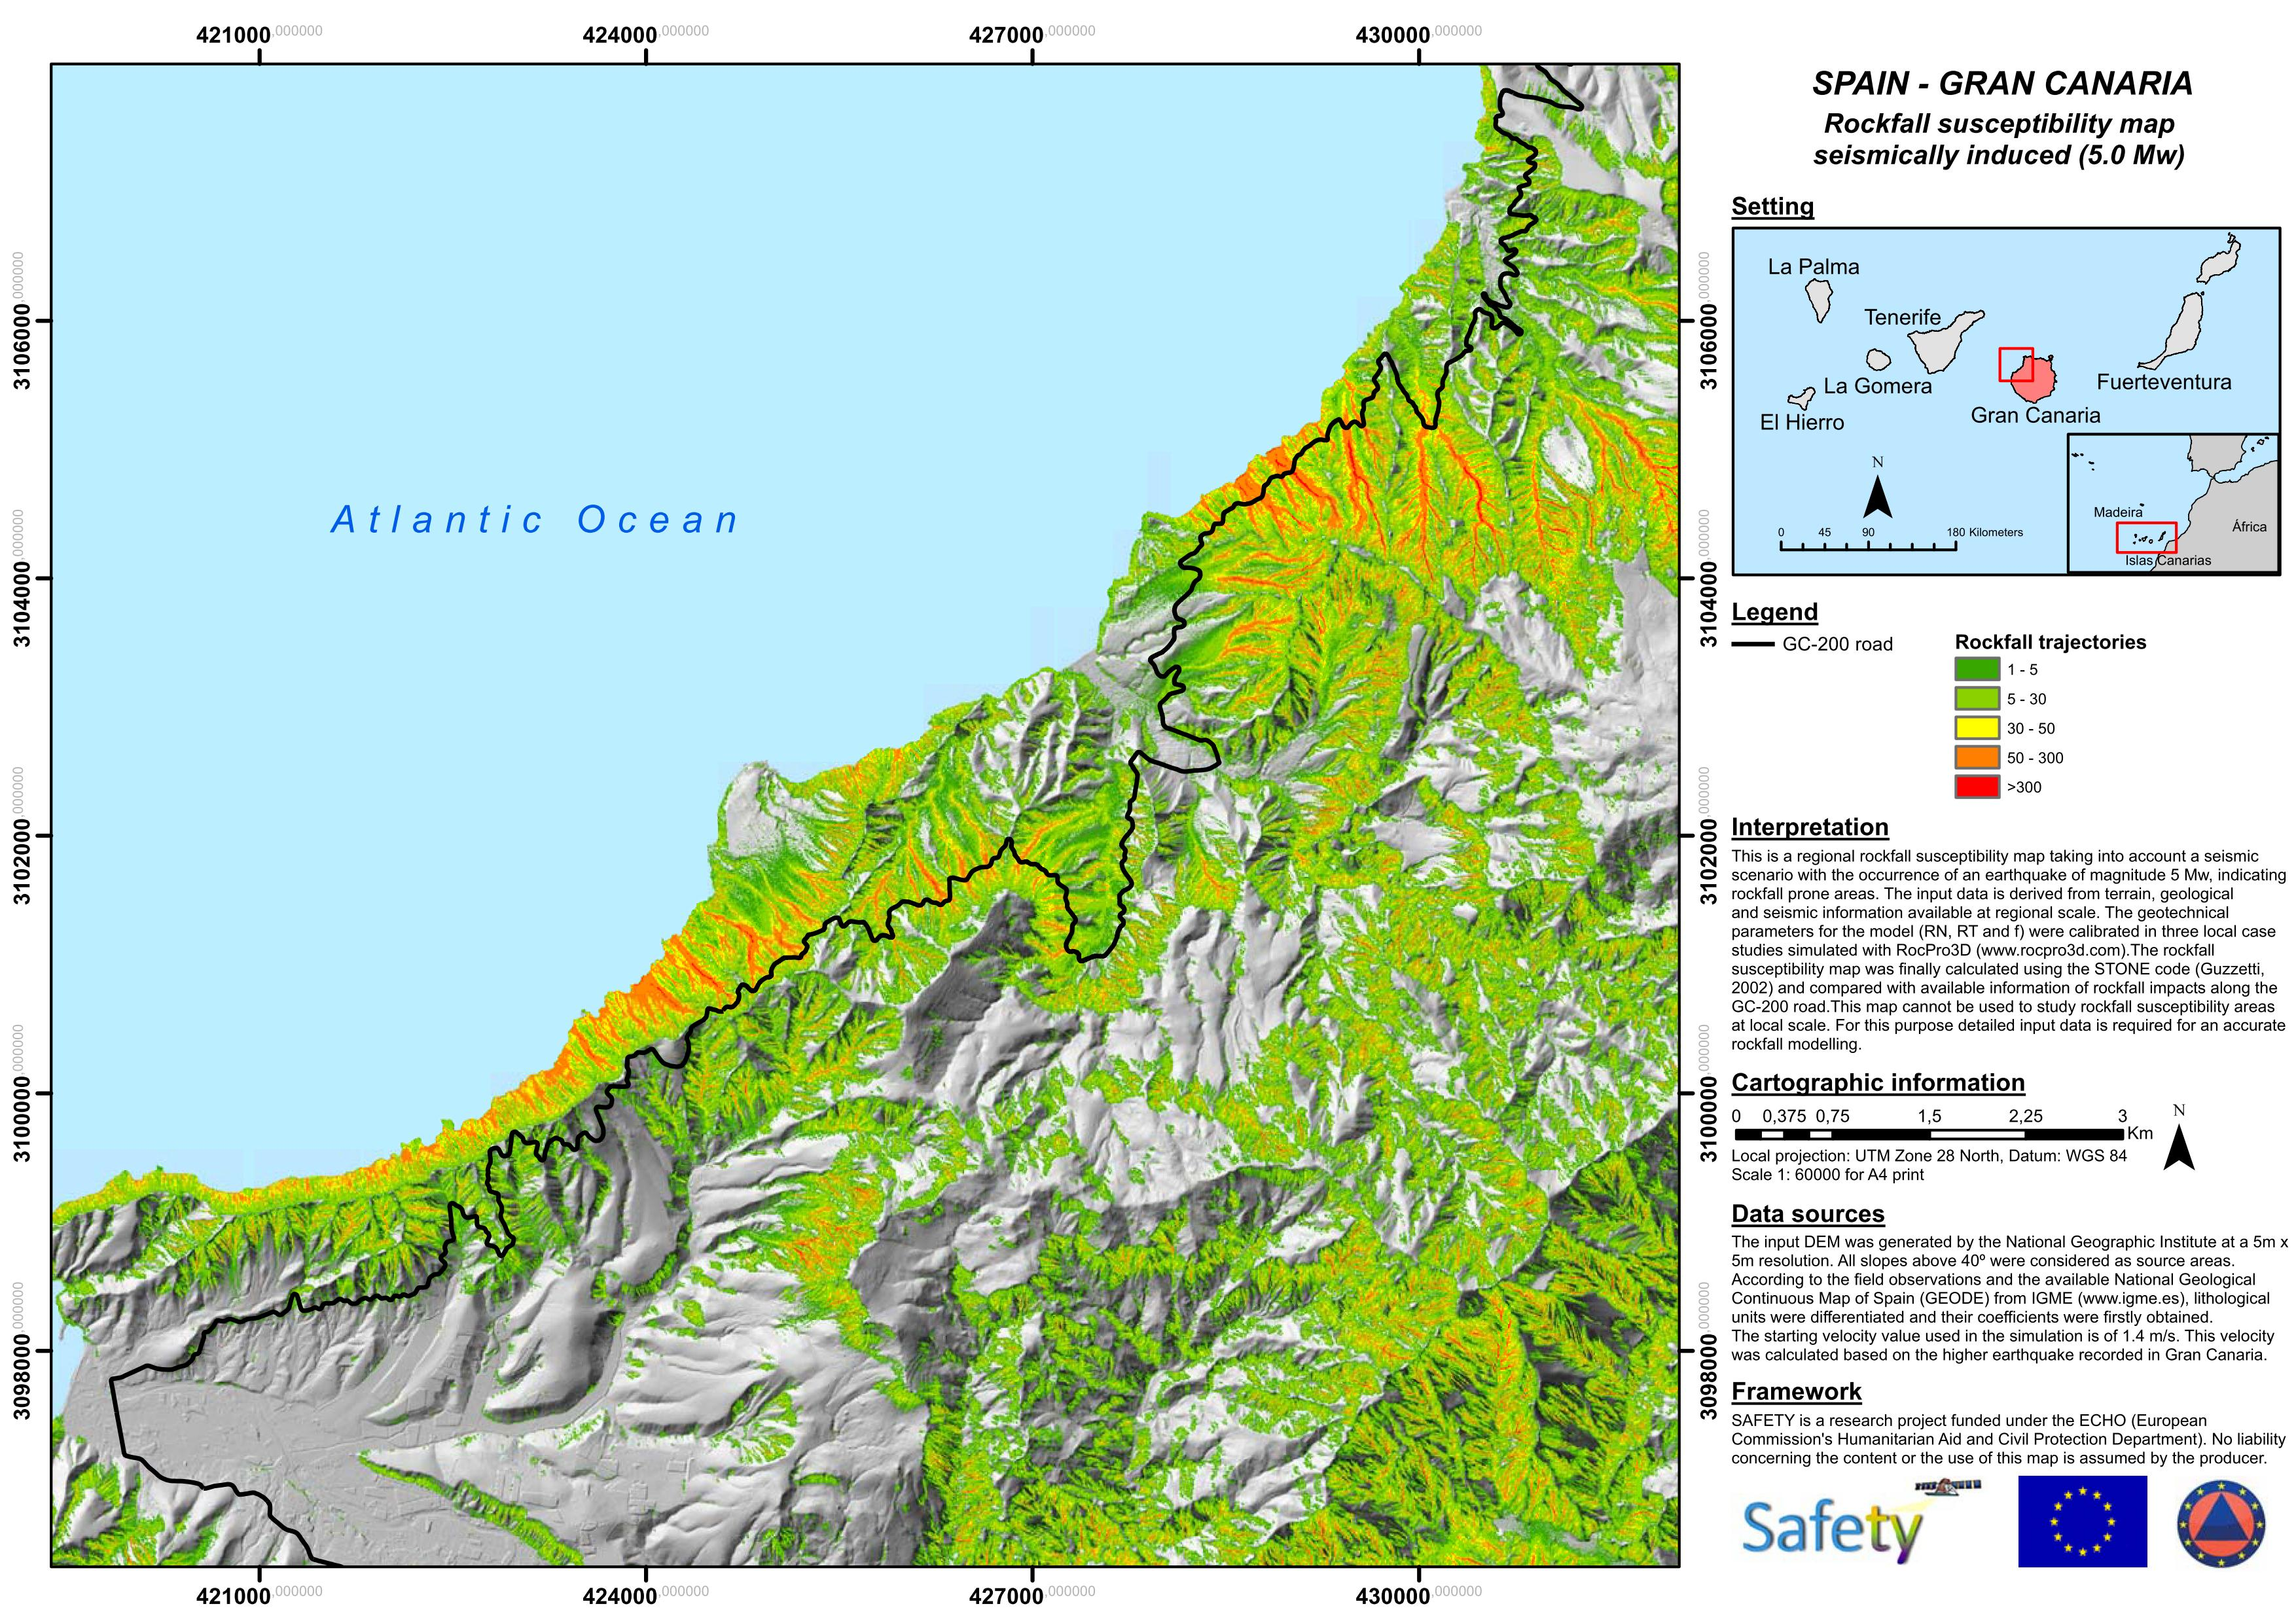 SAFETY Rockfall susceptibility map seismically induced